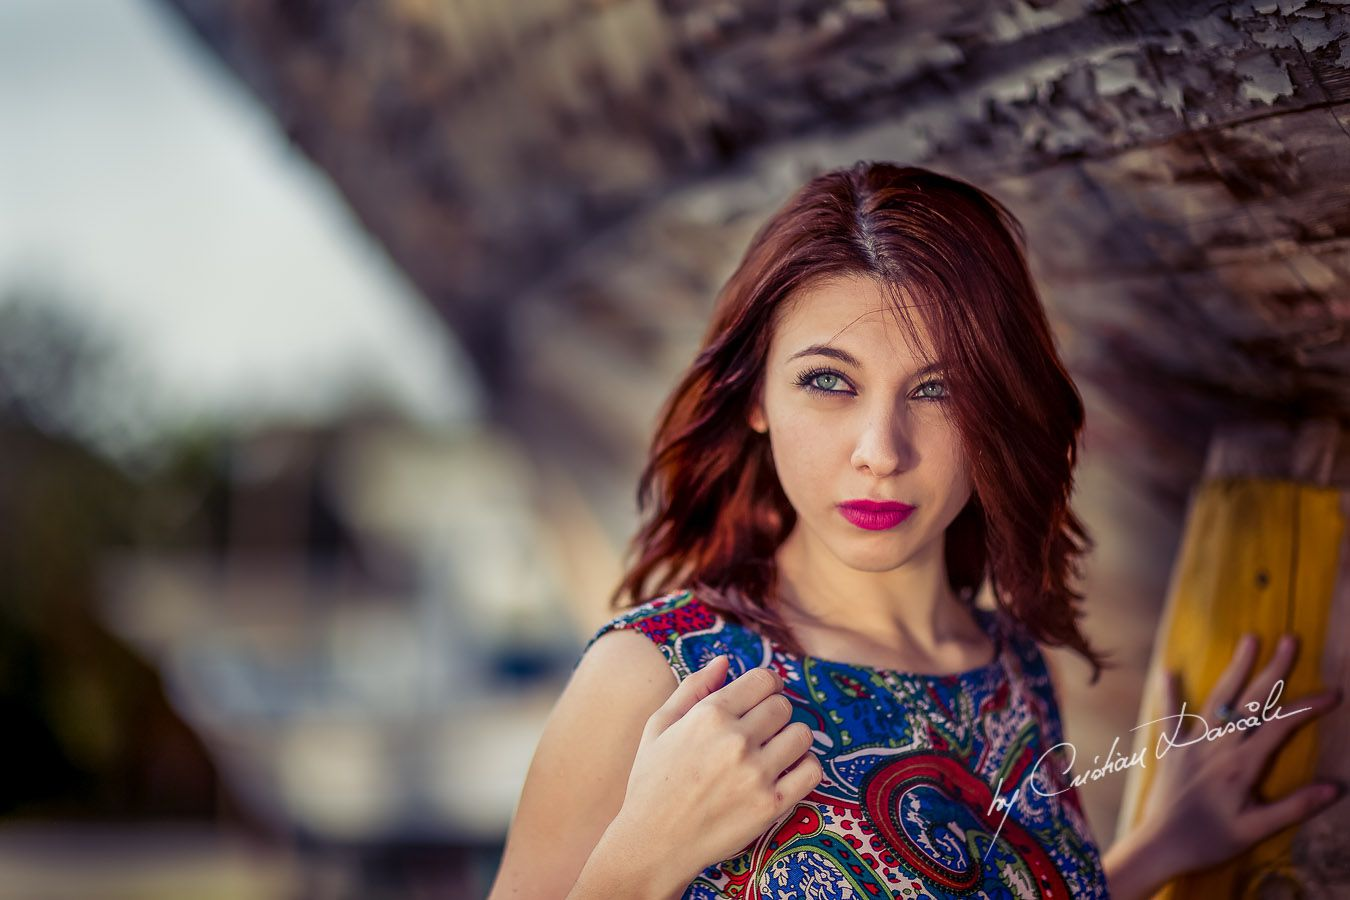 Portrait Photography in Cyprus - Cristian Dascalu